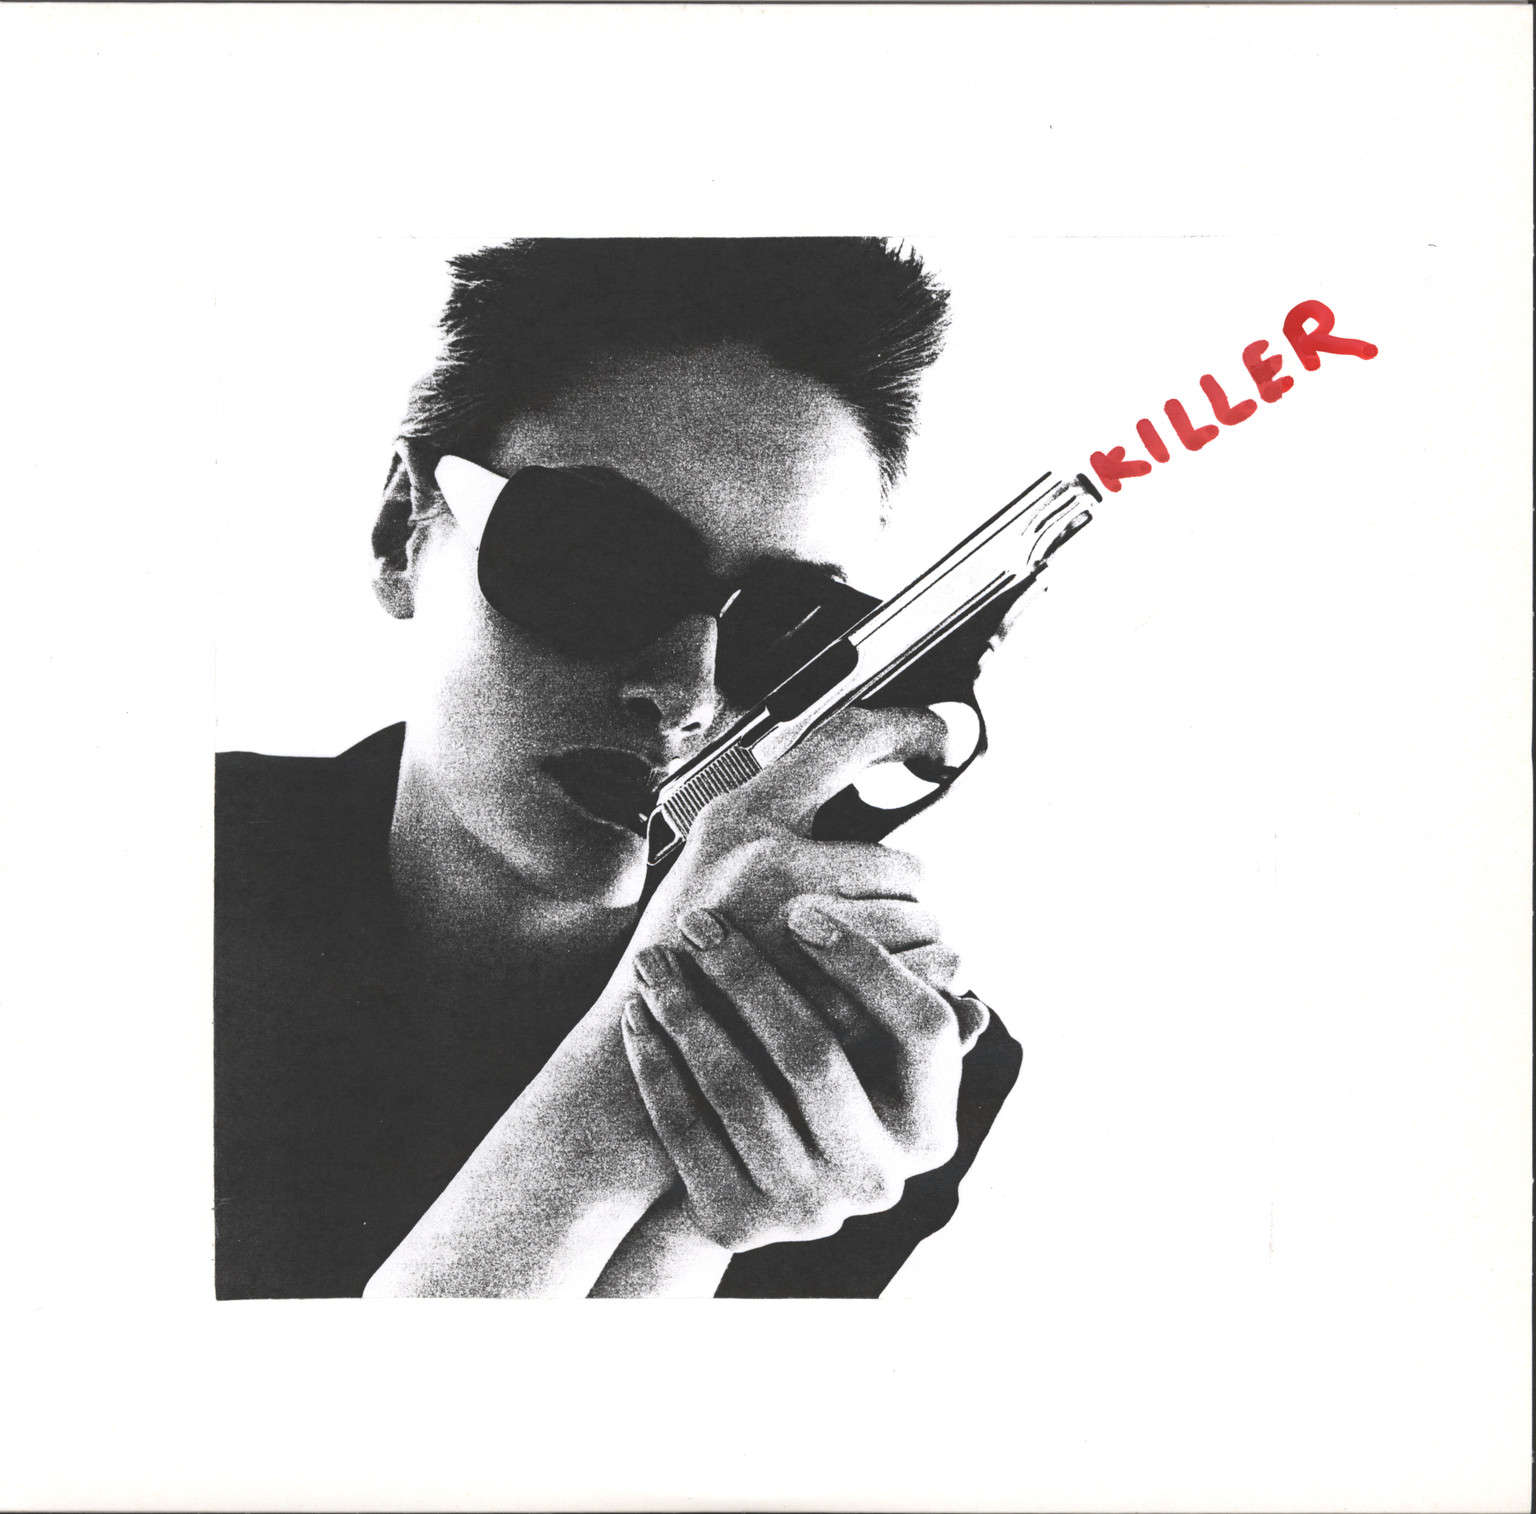 "Killer: Hardcore Killer Vs Killer In Space, 10"" Vinyl EP"